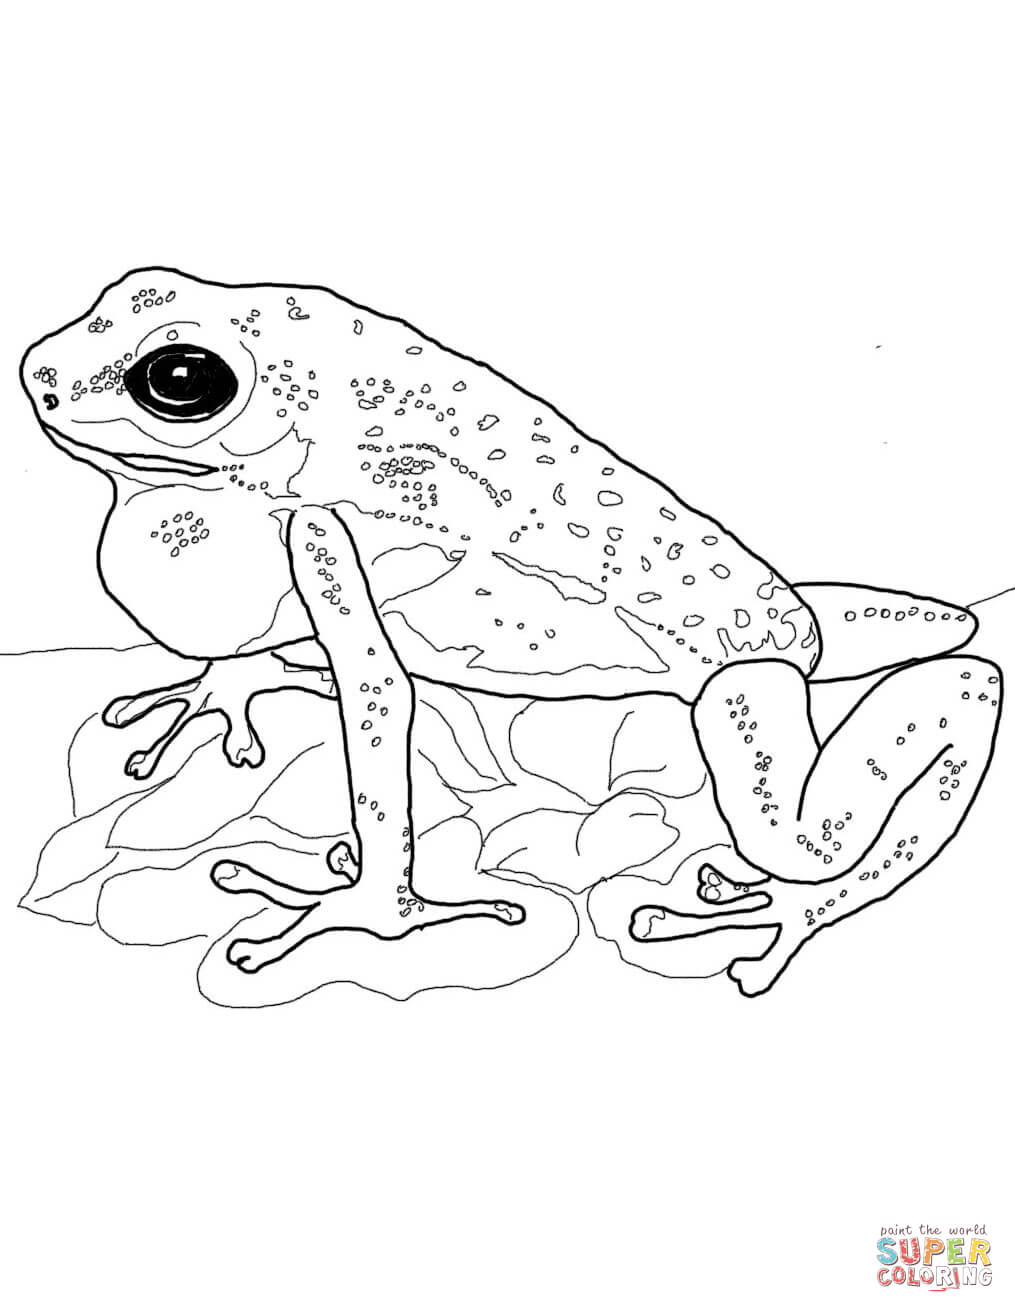 realistic frog coloring pages realistic frog coloring pages 005 kids time fun places coloring pages frog realistic